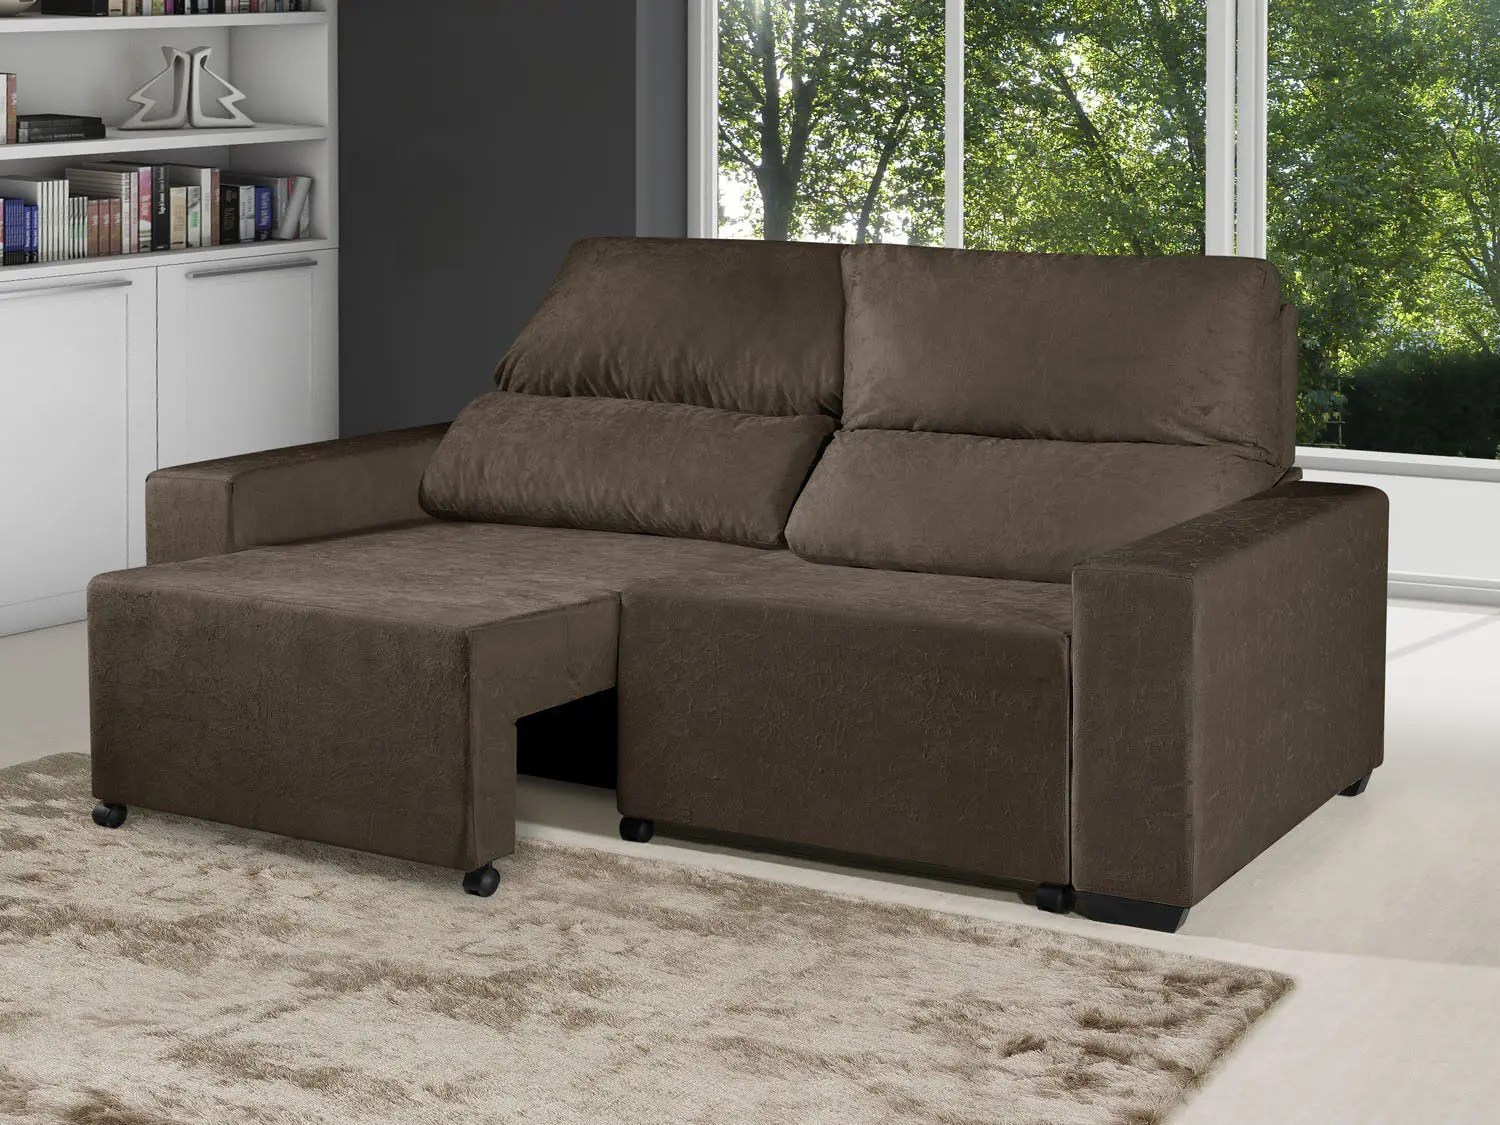 Sofa Retratil E Reclinavel Impermeavel Sofá Retrátil Reclinável 3 Lugares Elegance Suede